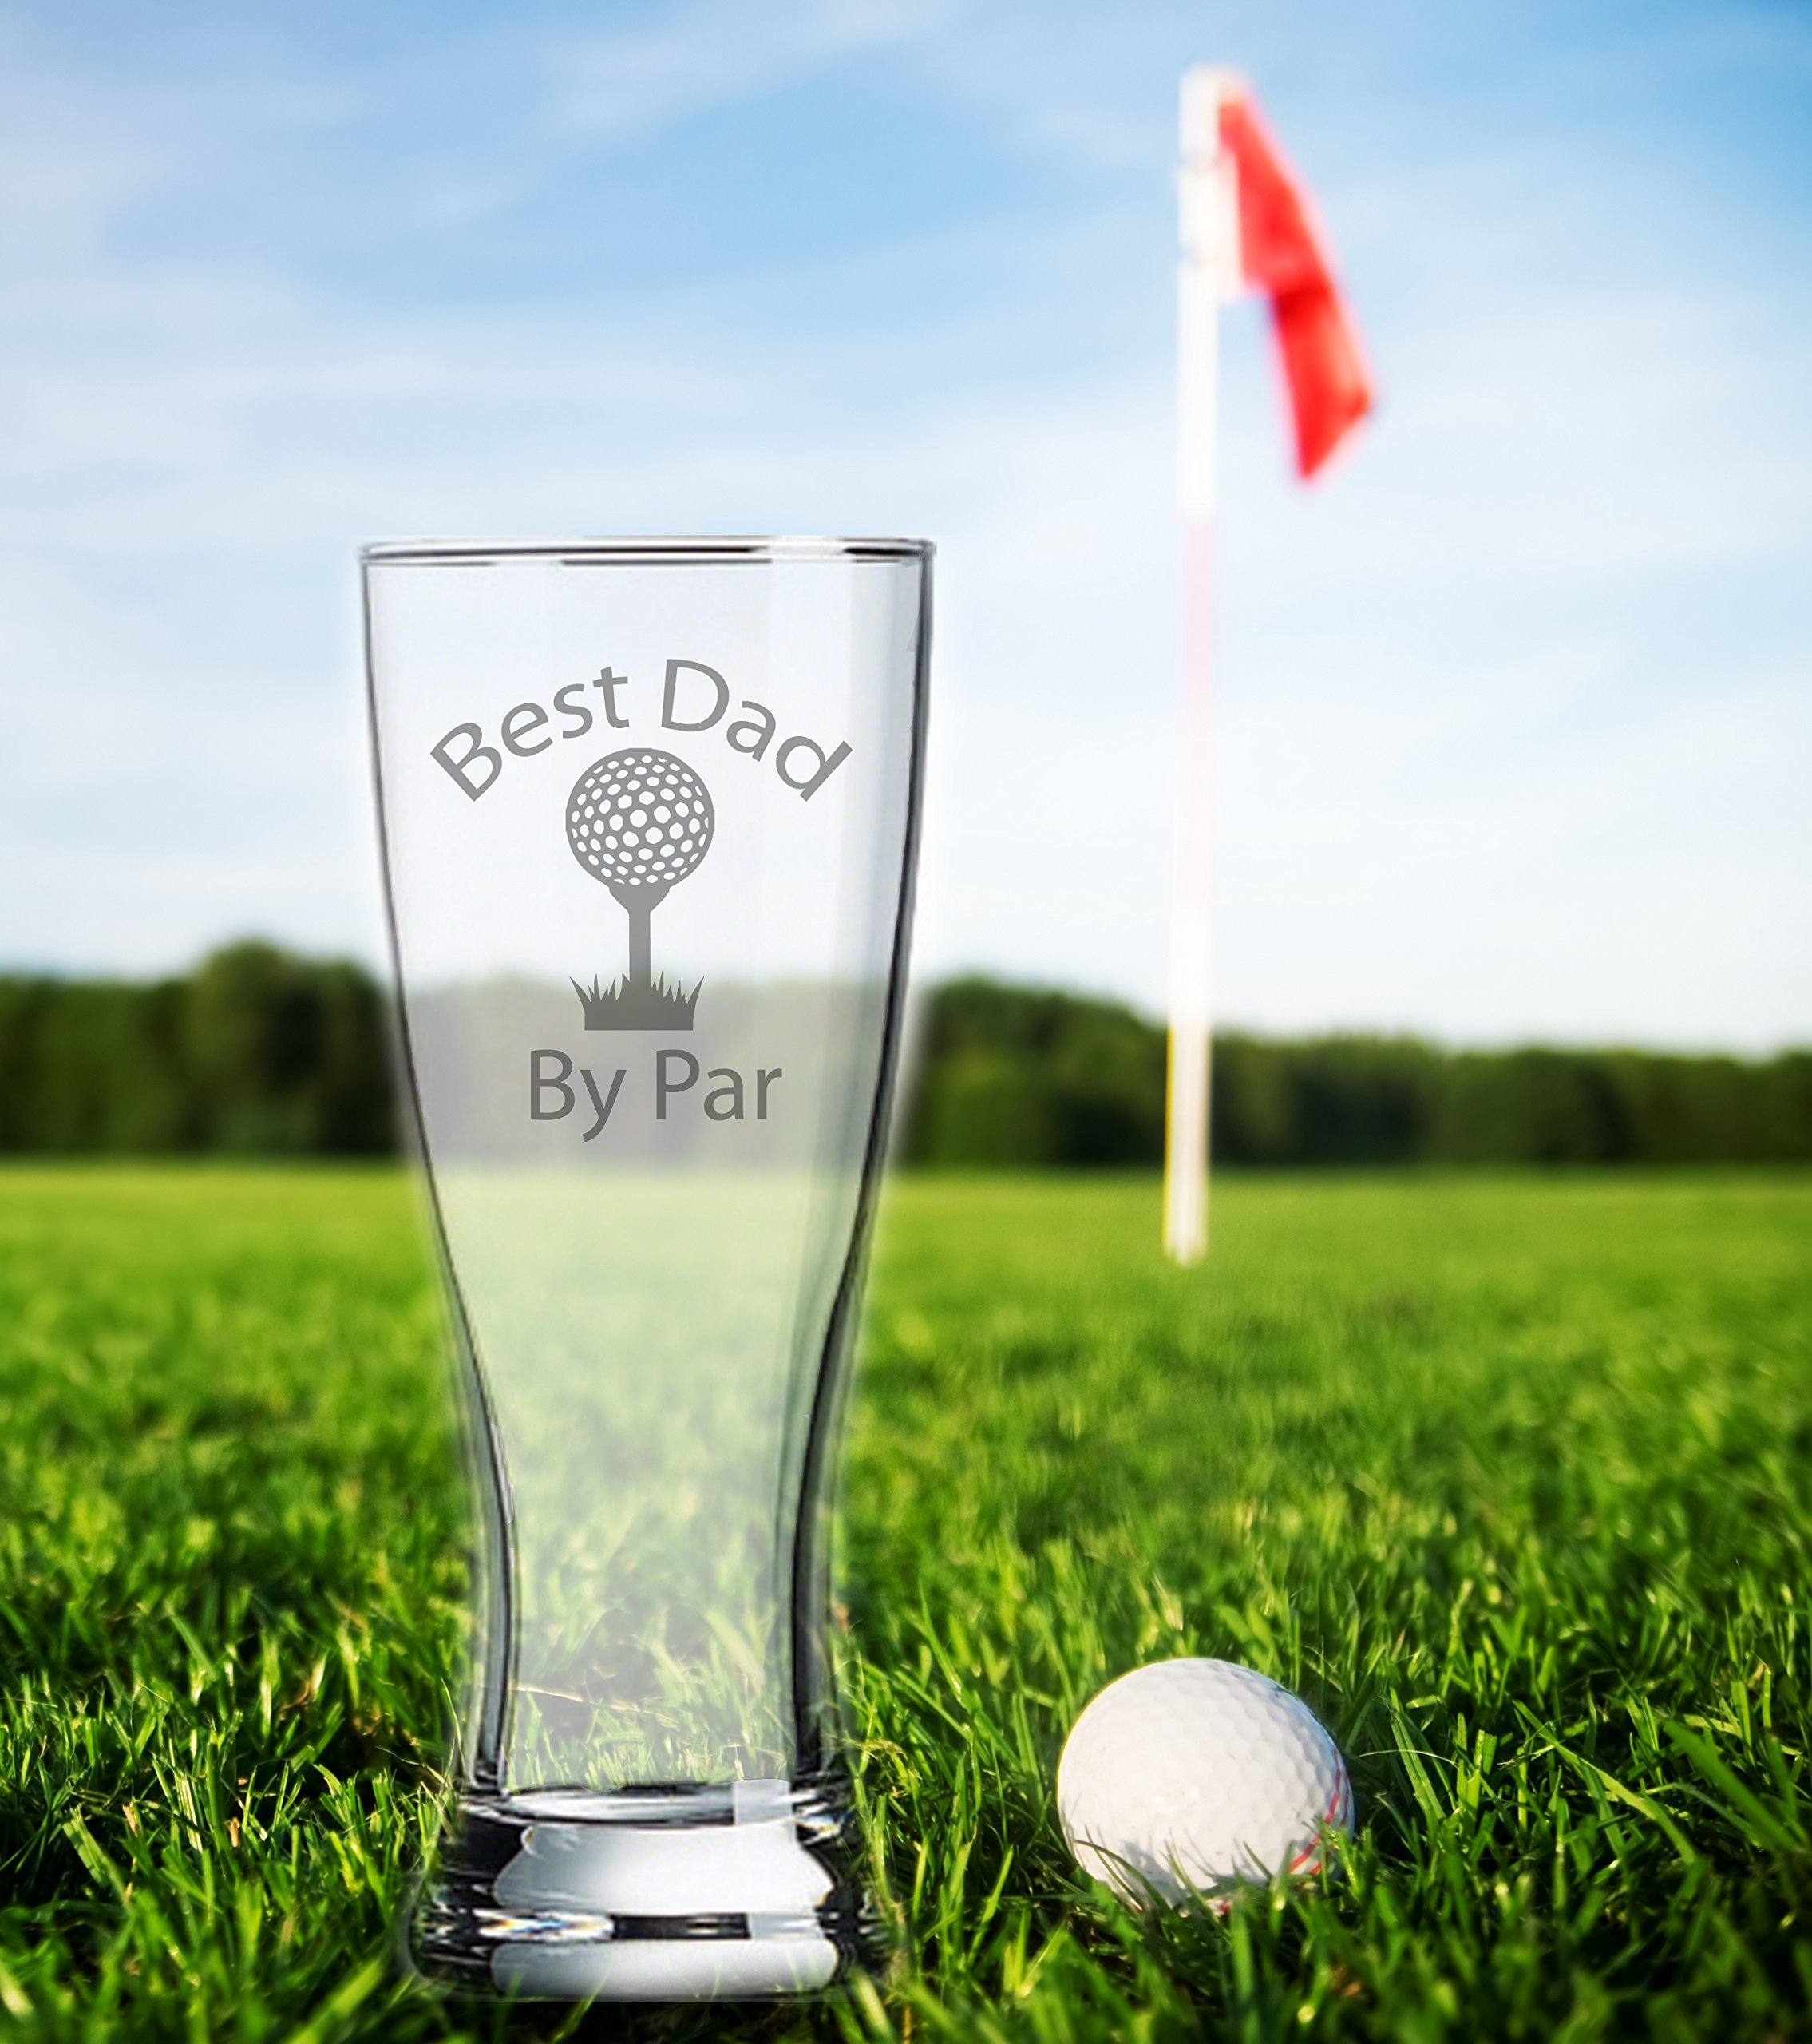 XL 23 oz ★ Dad Golfing Gift ★ Best Dad by Par ★ Funny Golfer Birthday ★ Gift for Dad ★ Brother ★ Father in Law ★ Father ★ Beer ★ Golf ball ★ Dad to be ★ Step Dad ★ Golf cart by Etchpress Yourself (Image #2)